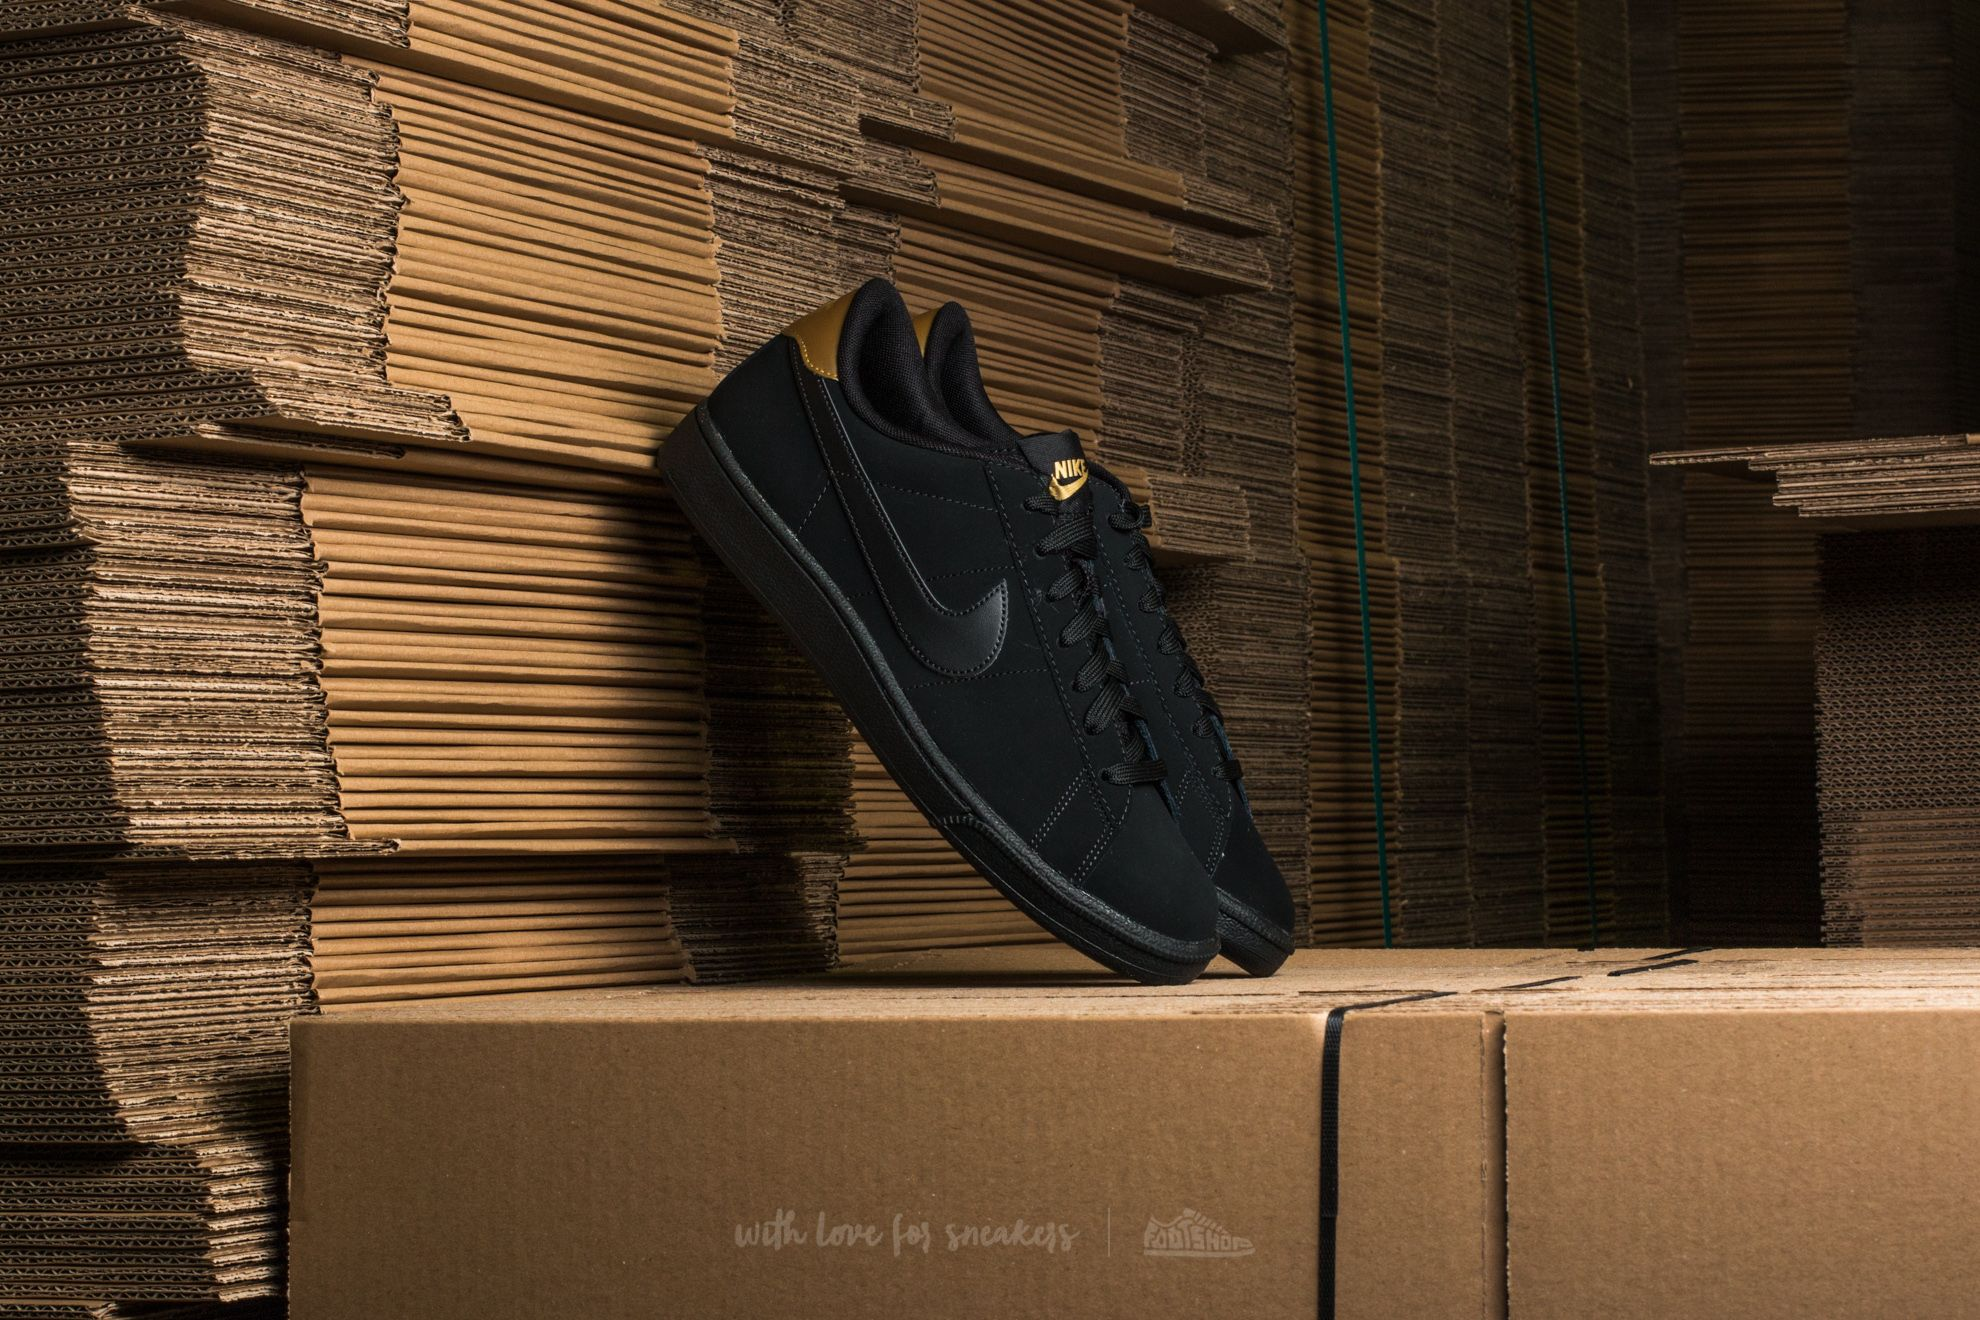 Nike Tennis Classic CS Black/ Black-Metallic Gold